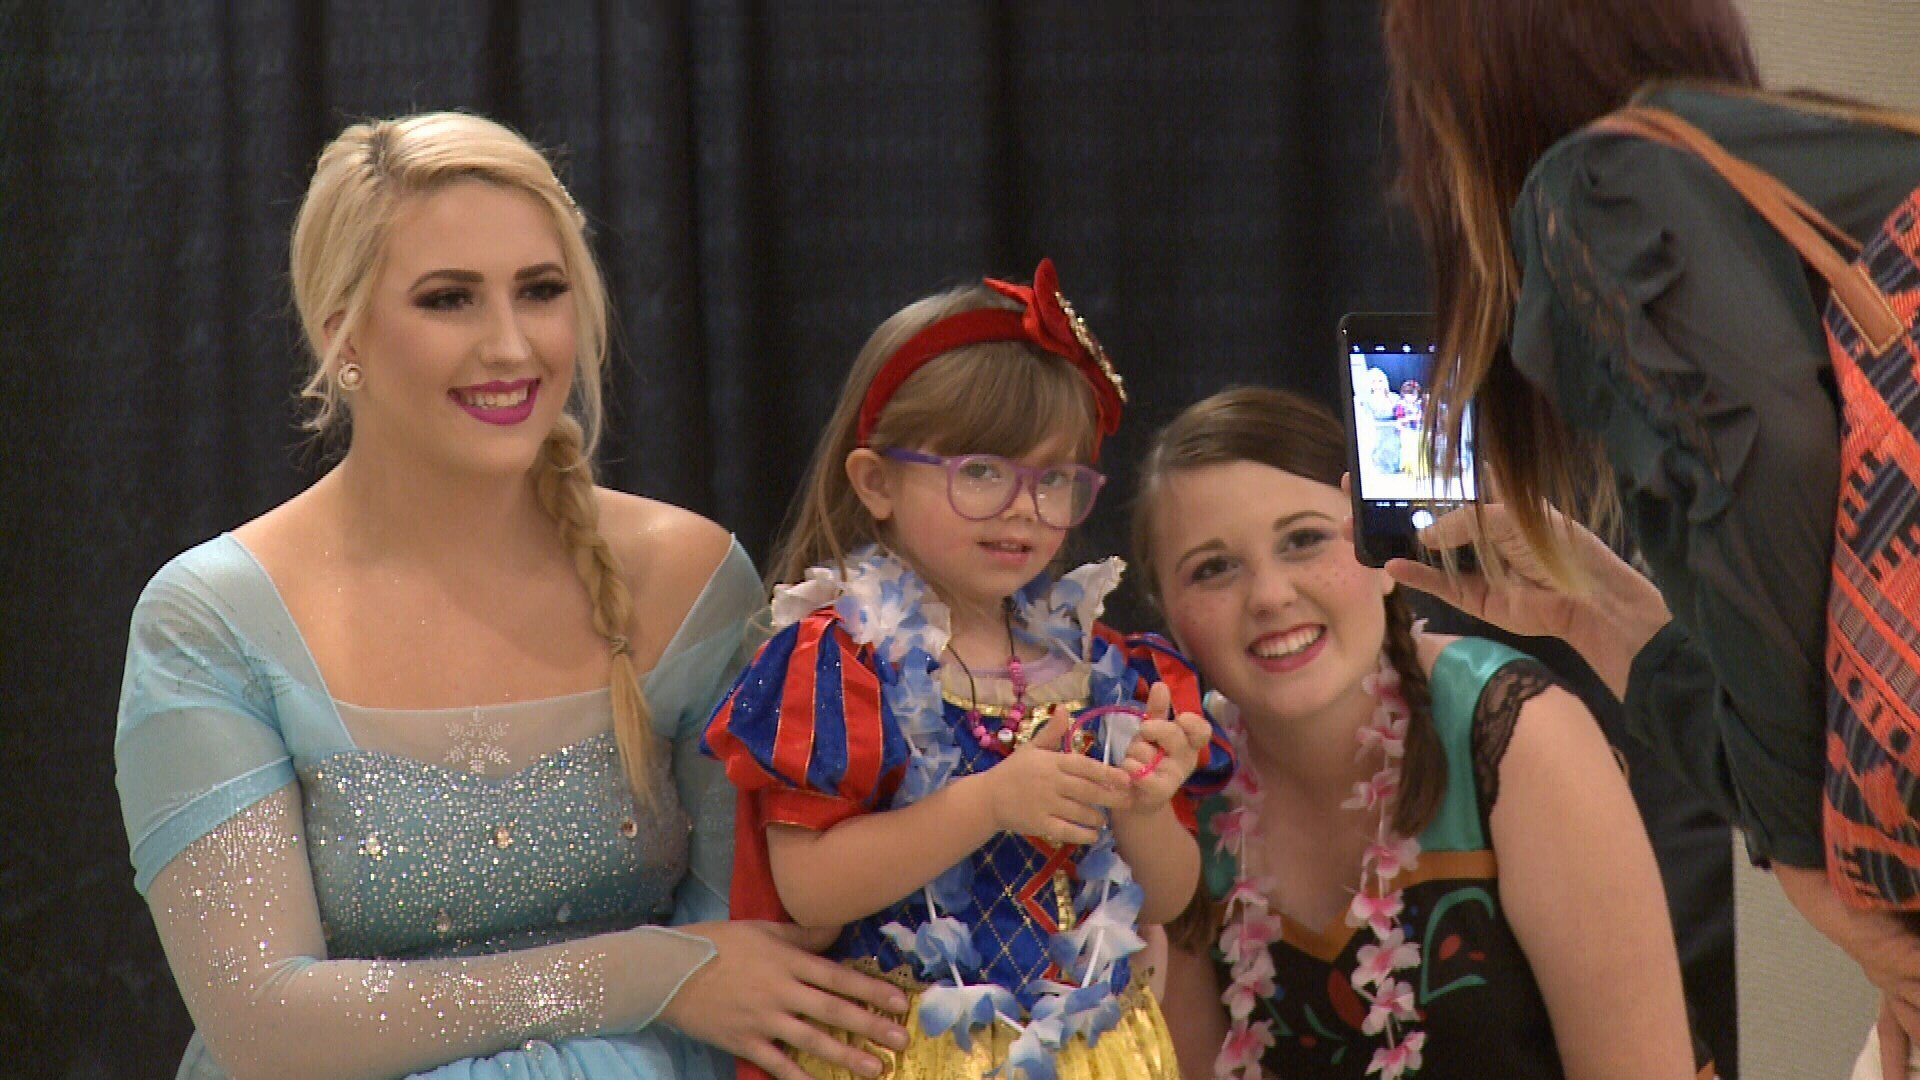 Little princess gets her picture taken with big princesses.